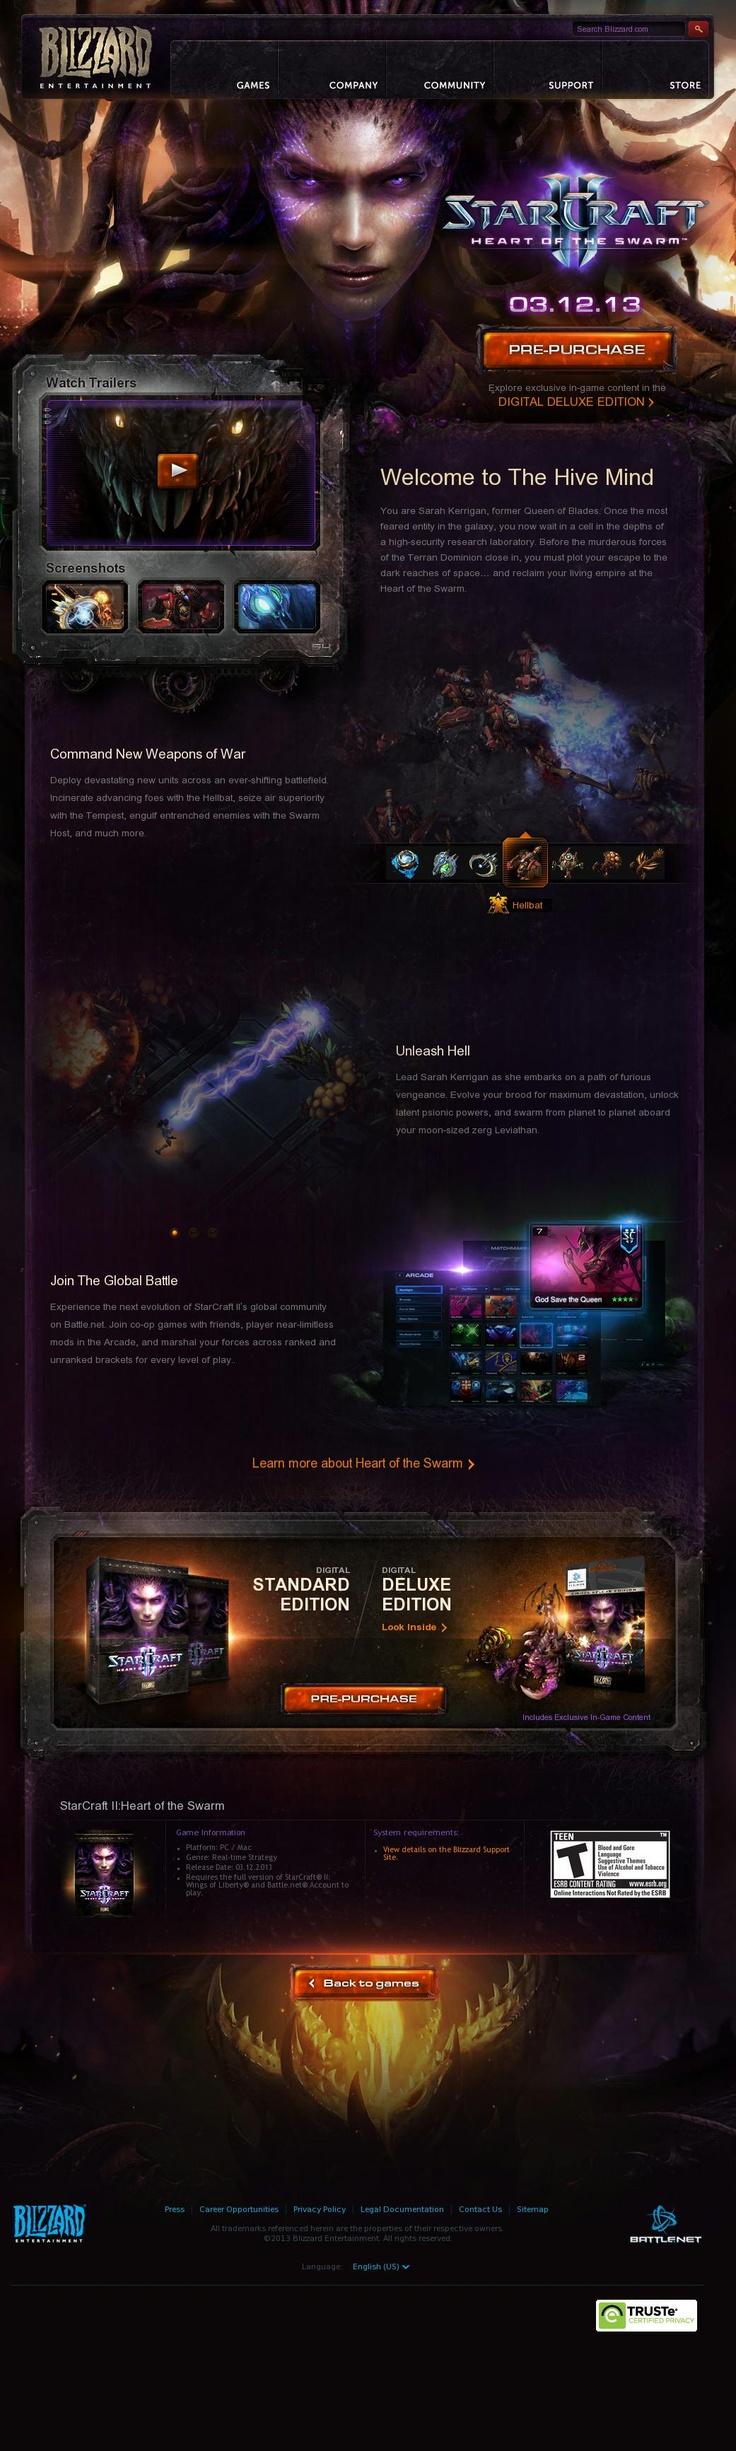 StarCraft II: Heart of the Swarm http://us.blizzard.com/en-us/games/hots/